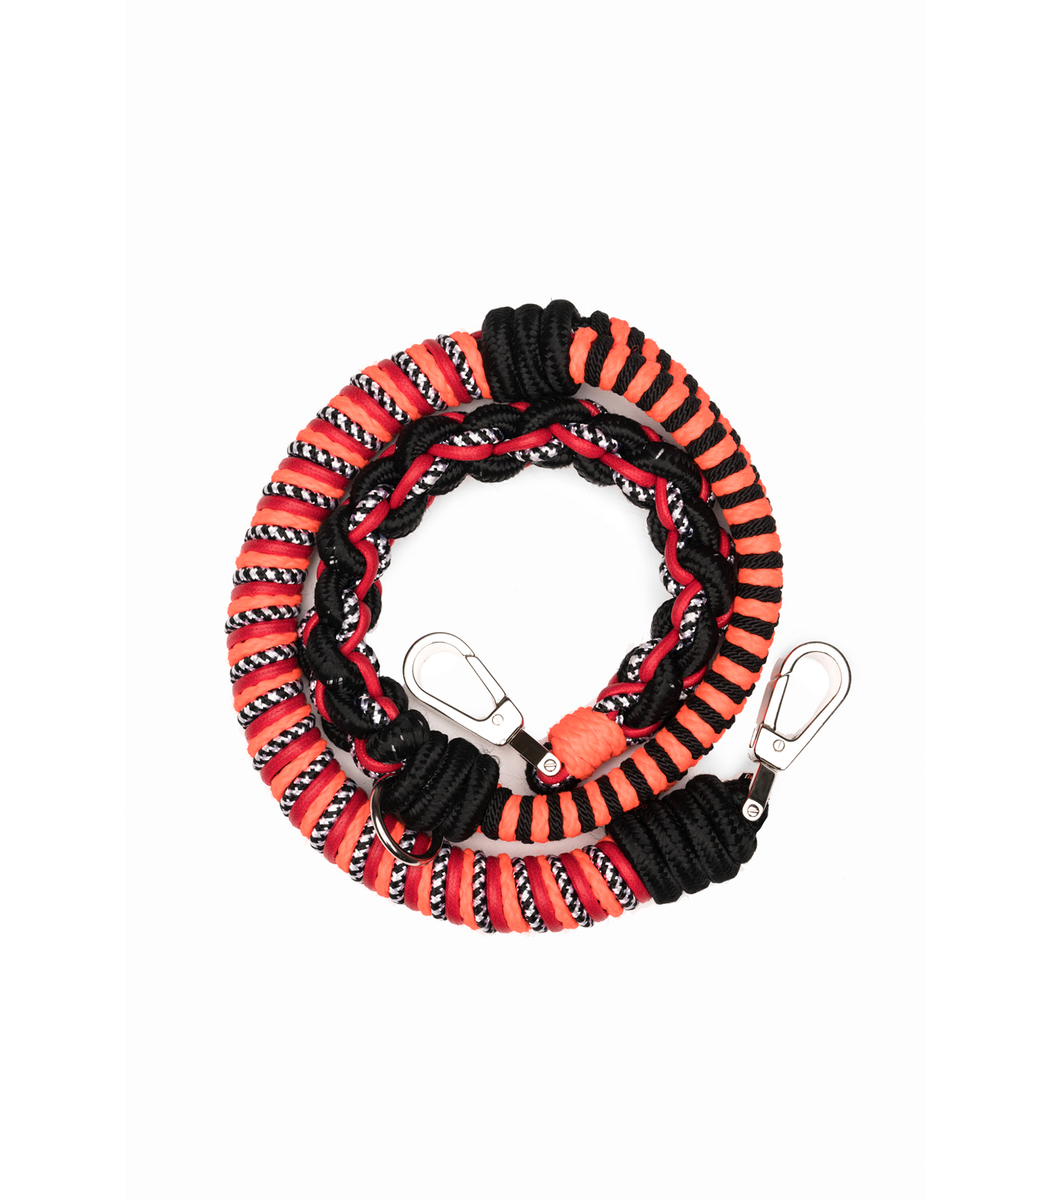 PROENZA SCHOULER Straps Flame Red Mix Braided Shoulder Strap